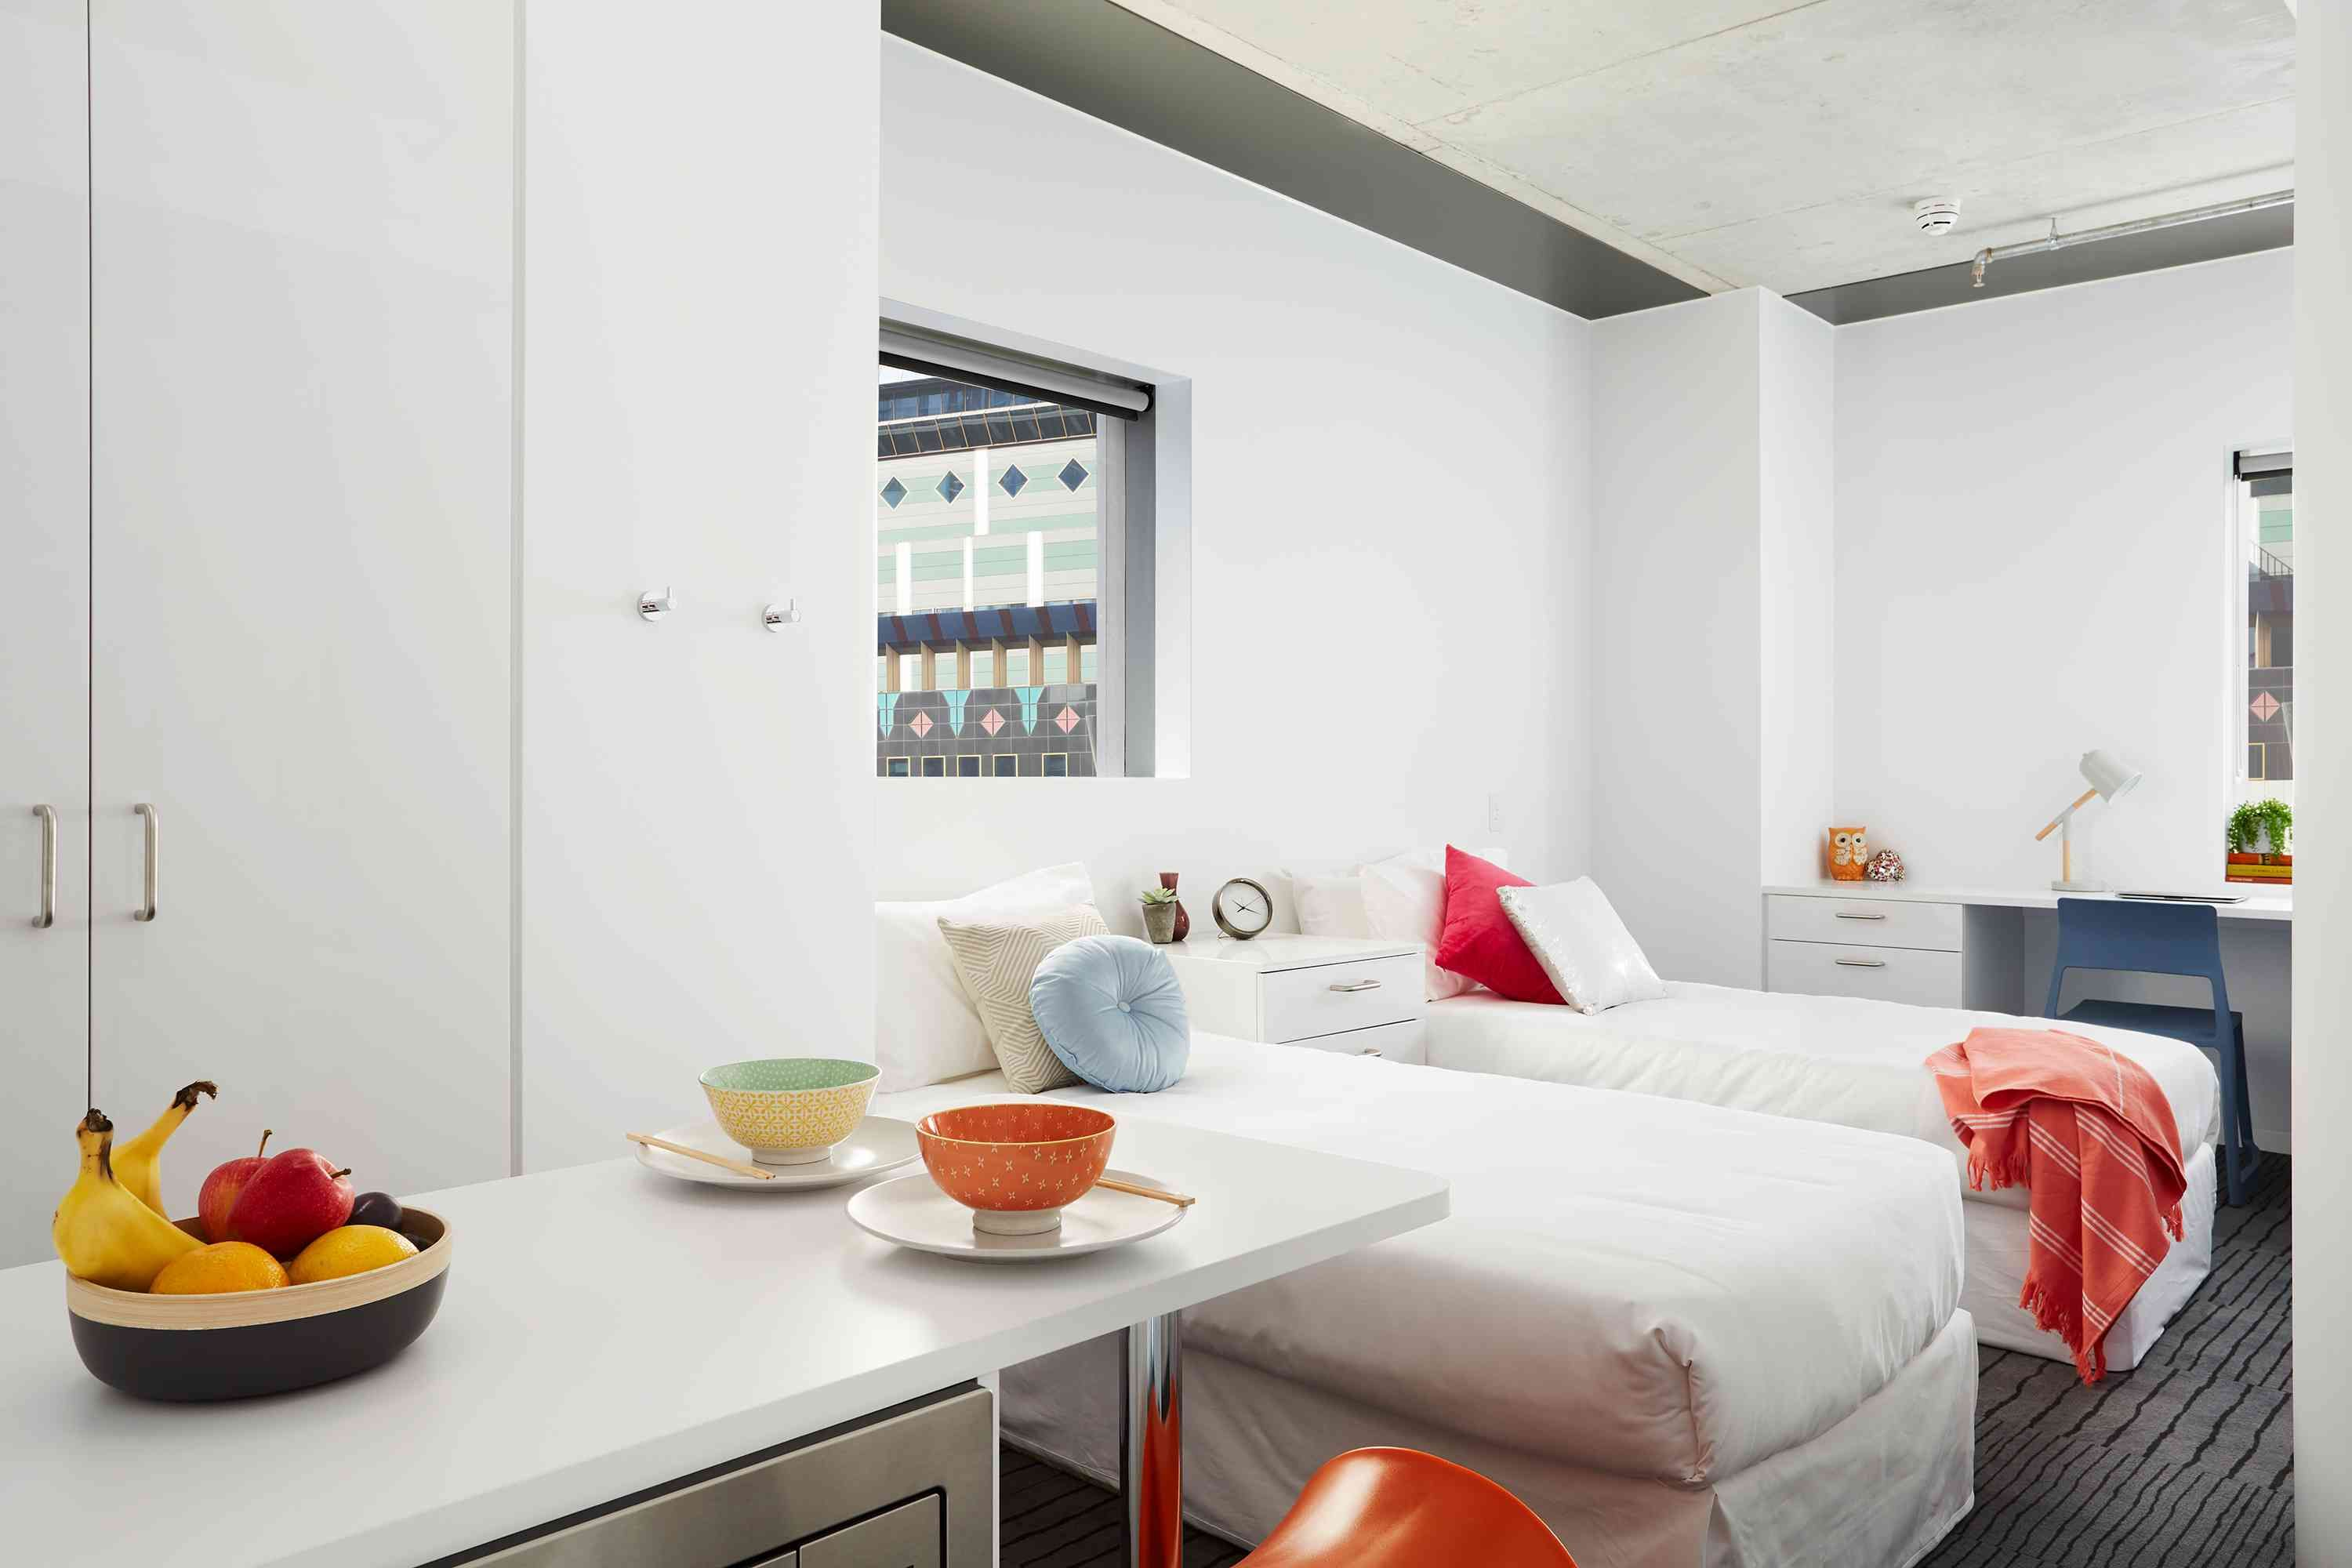 Scape Swanston Melbourne Student Accommodation University Living Student Accommodation Communal Kitchen Student Room